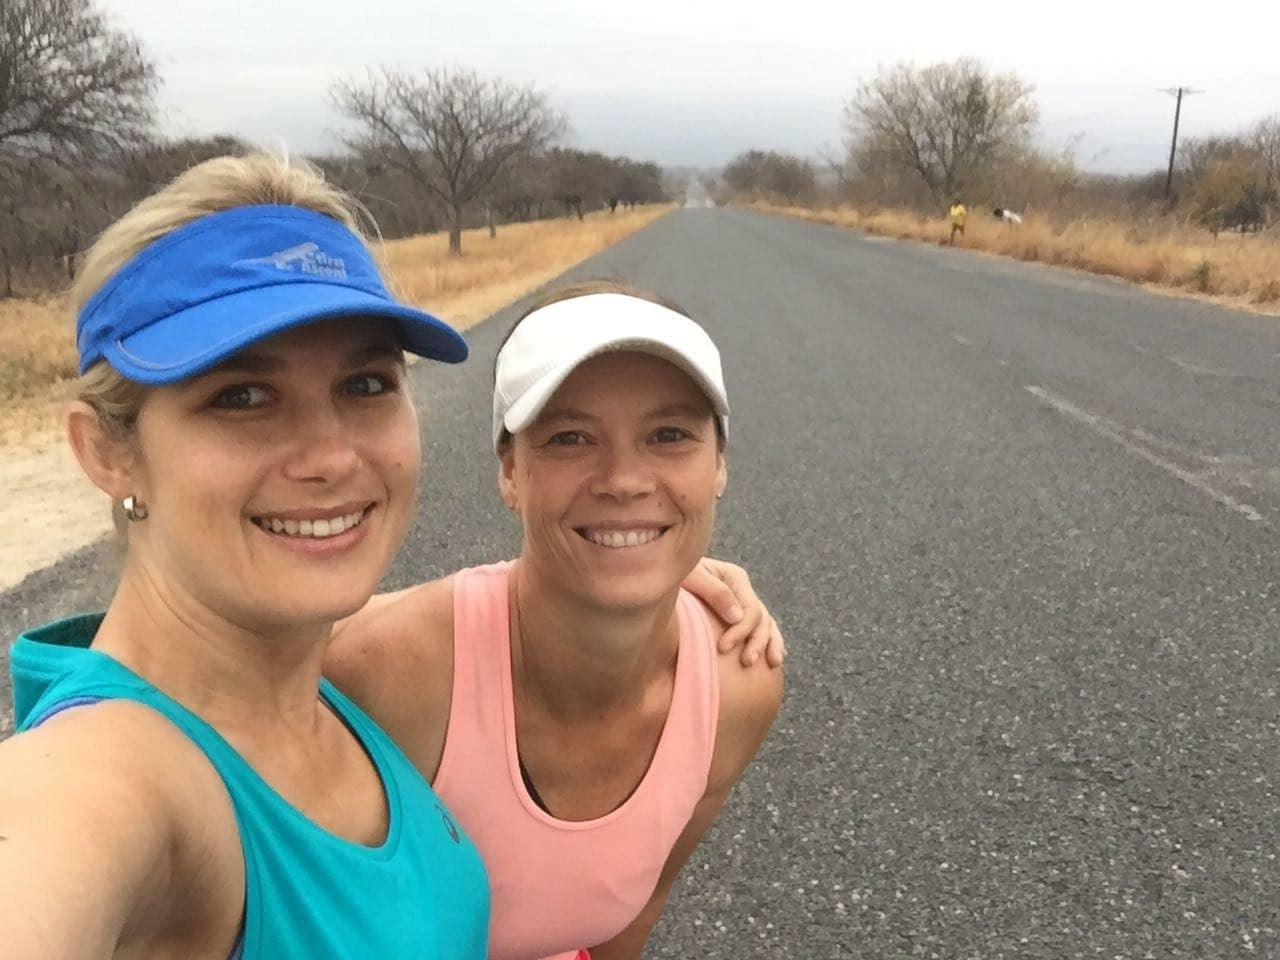 Run The World Challenge 2 Profile: Romance got Carmen Gair hooked on running